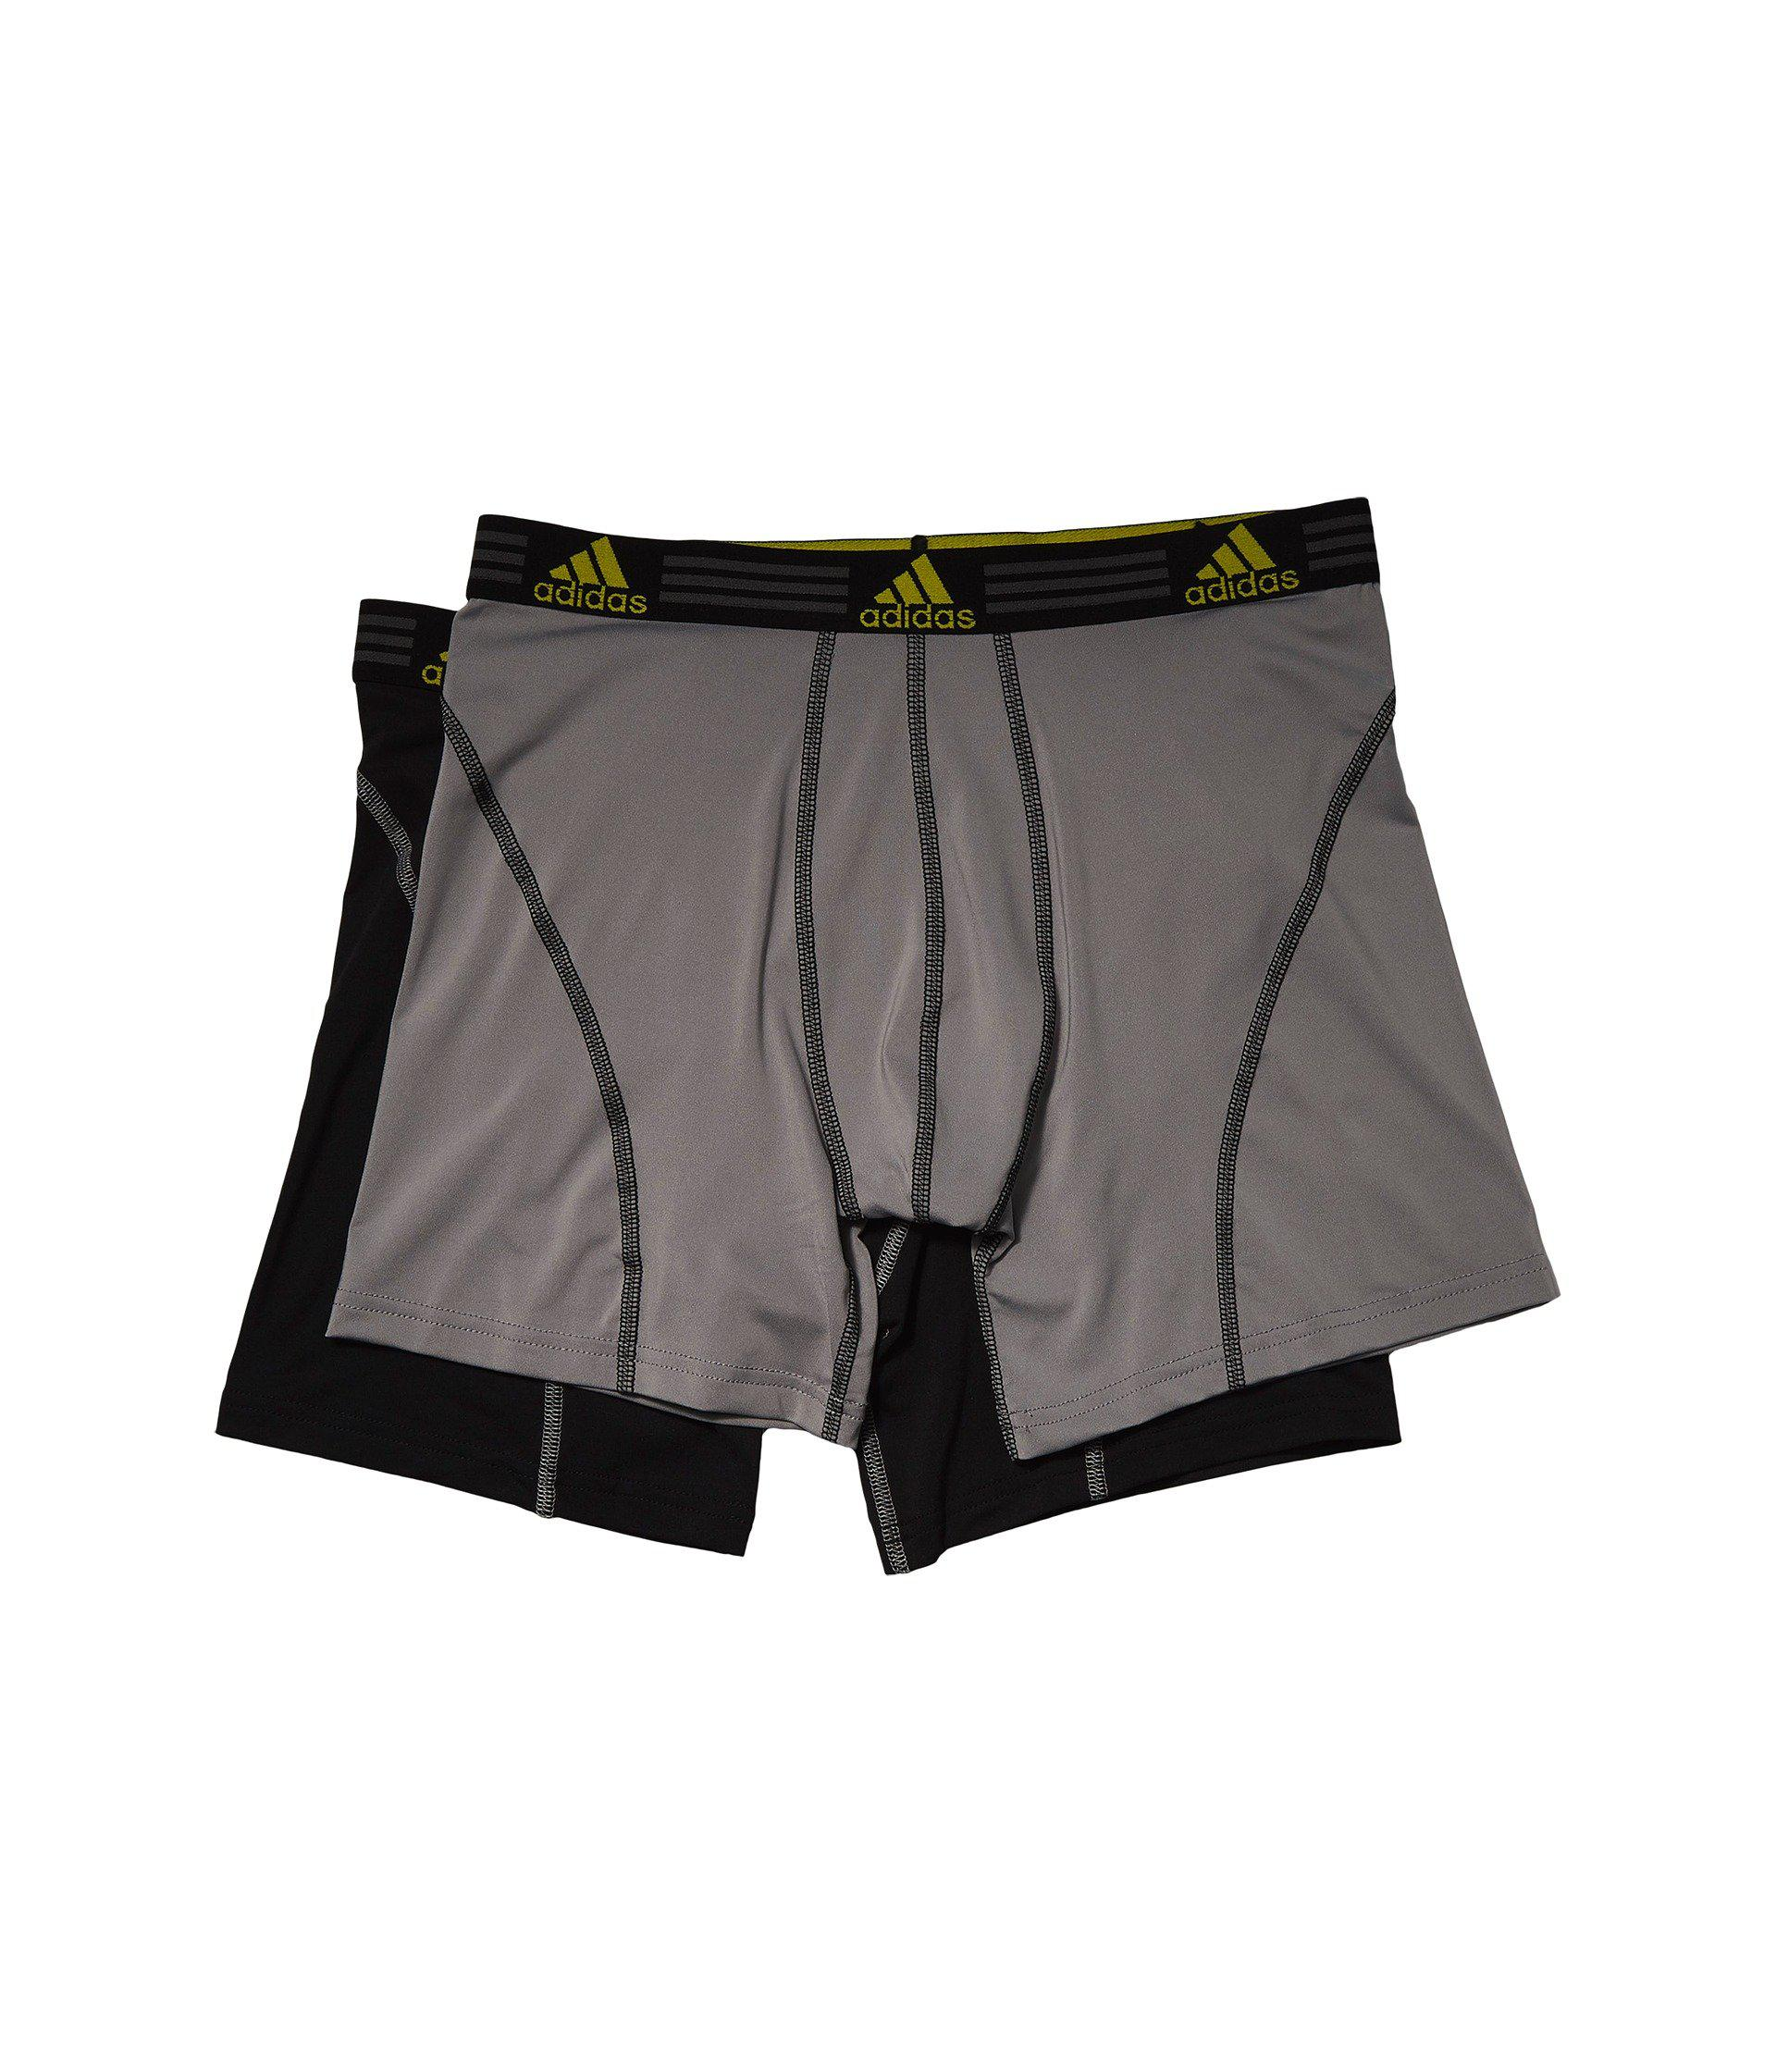 1d91ac4bc6c8 Lyst - adidas (r) Sport Performance Climalite 2-pack Boxer Brief ...